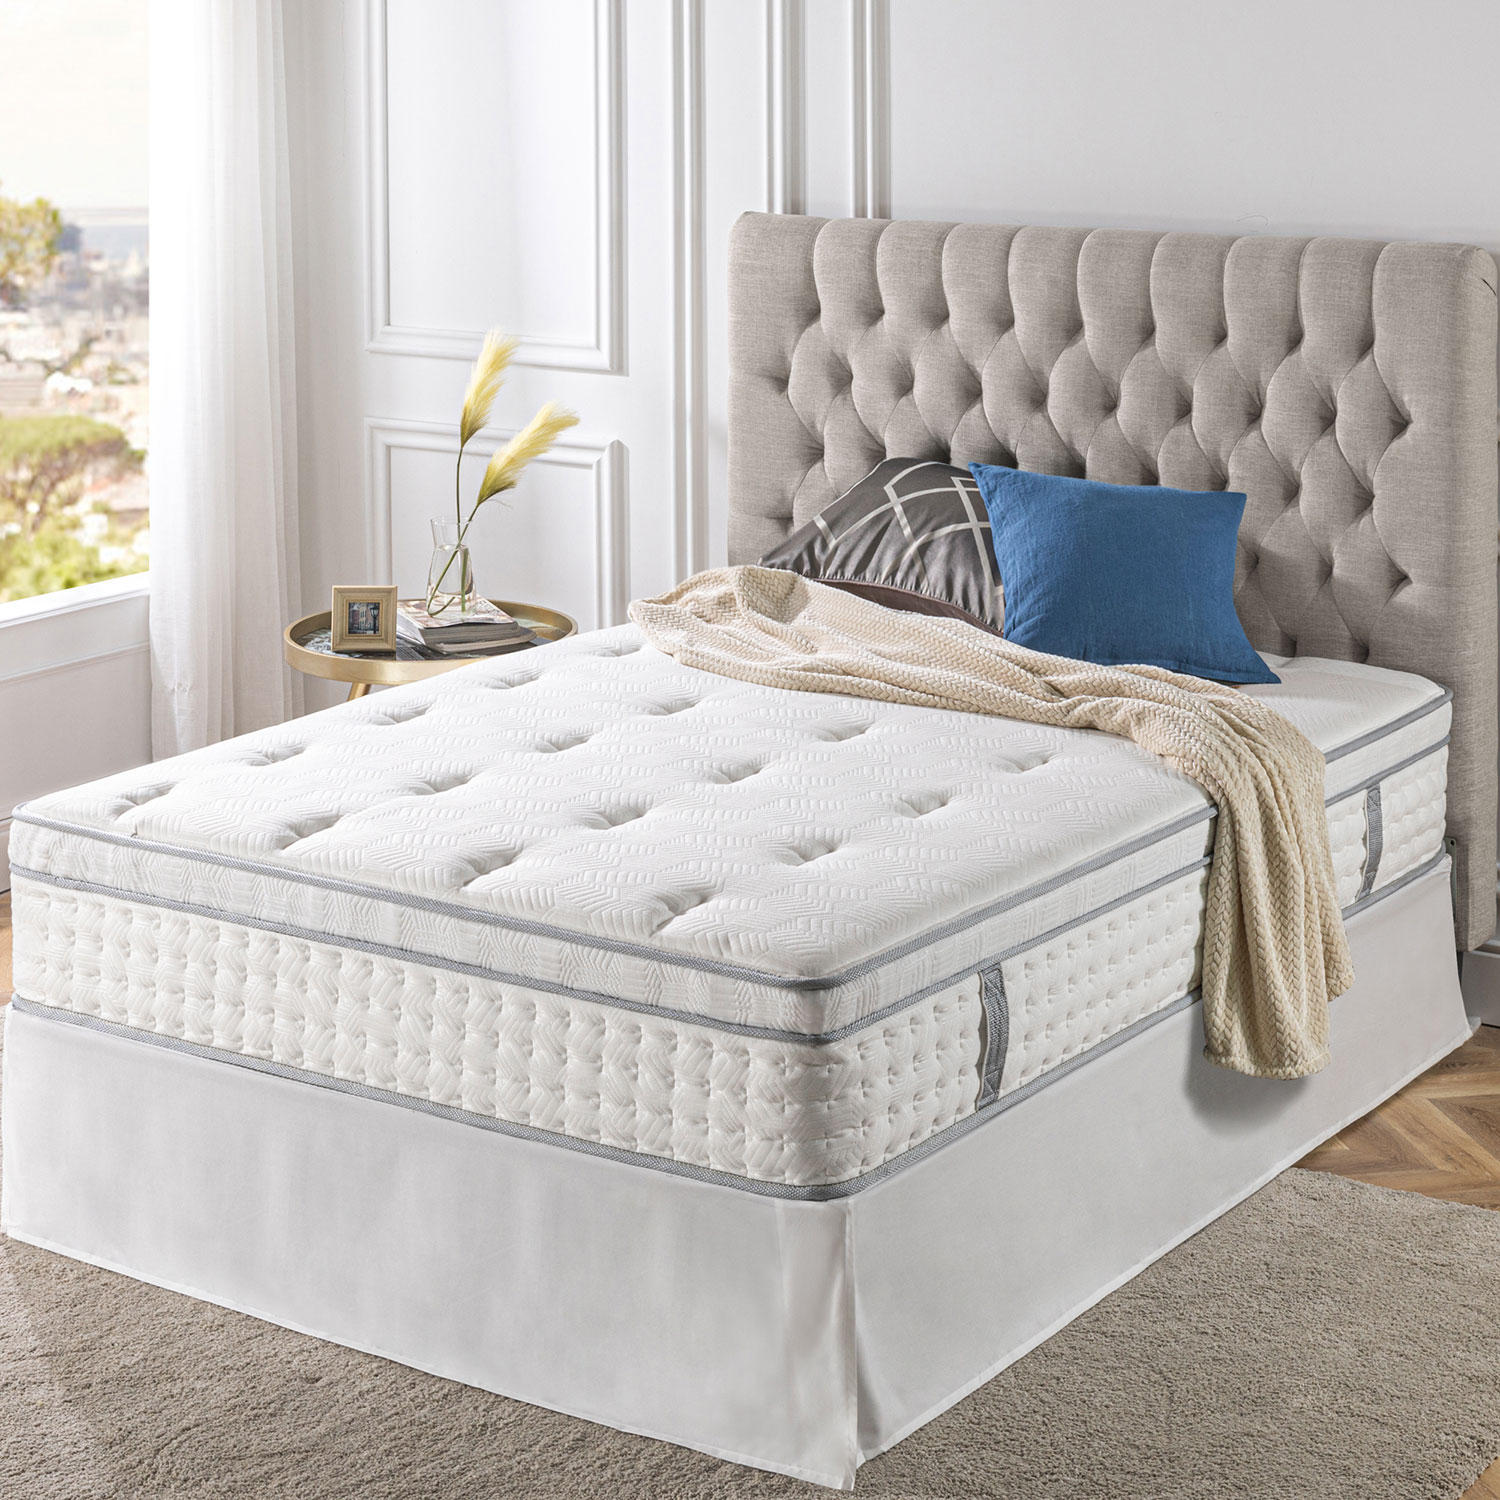 "Zinus Night Therapy iCoil 13"" Euro Boxtop Spring Queen Mattress"